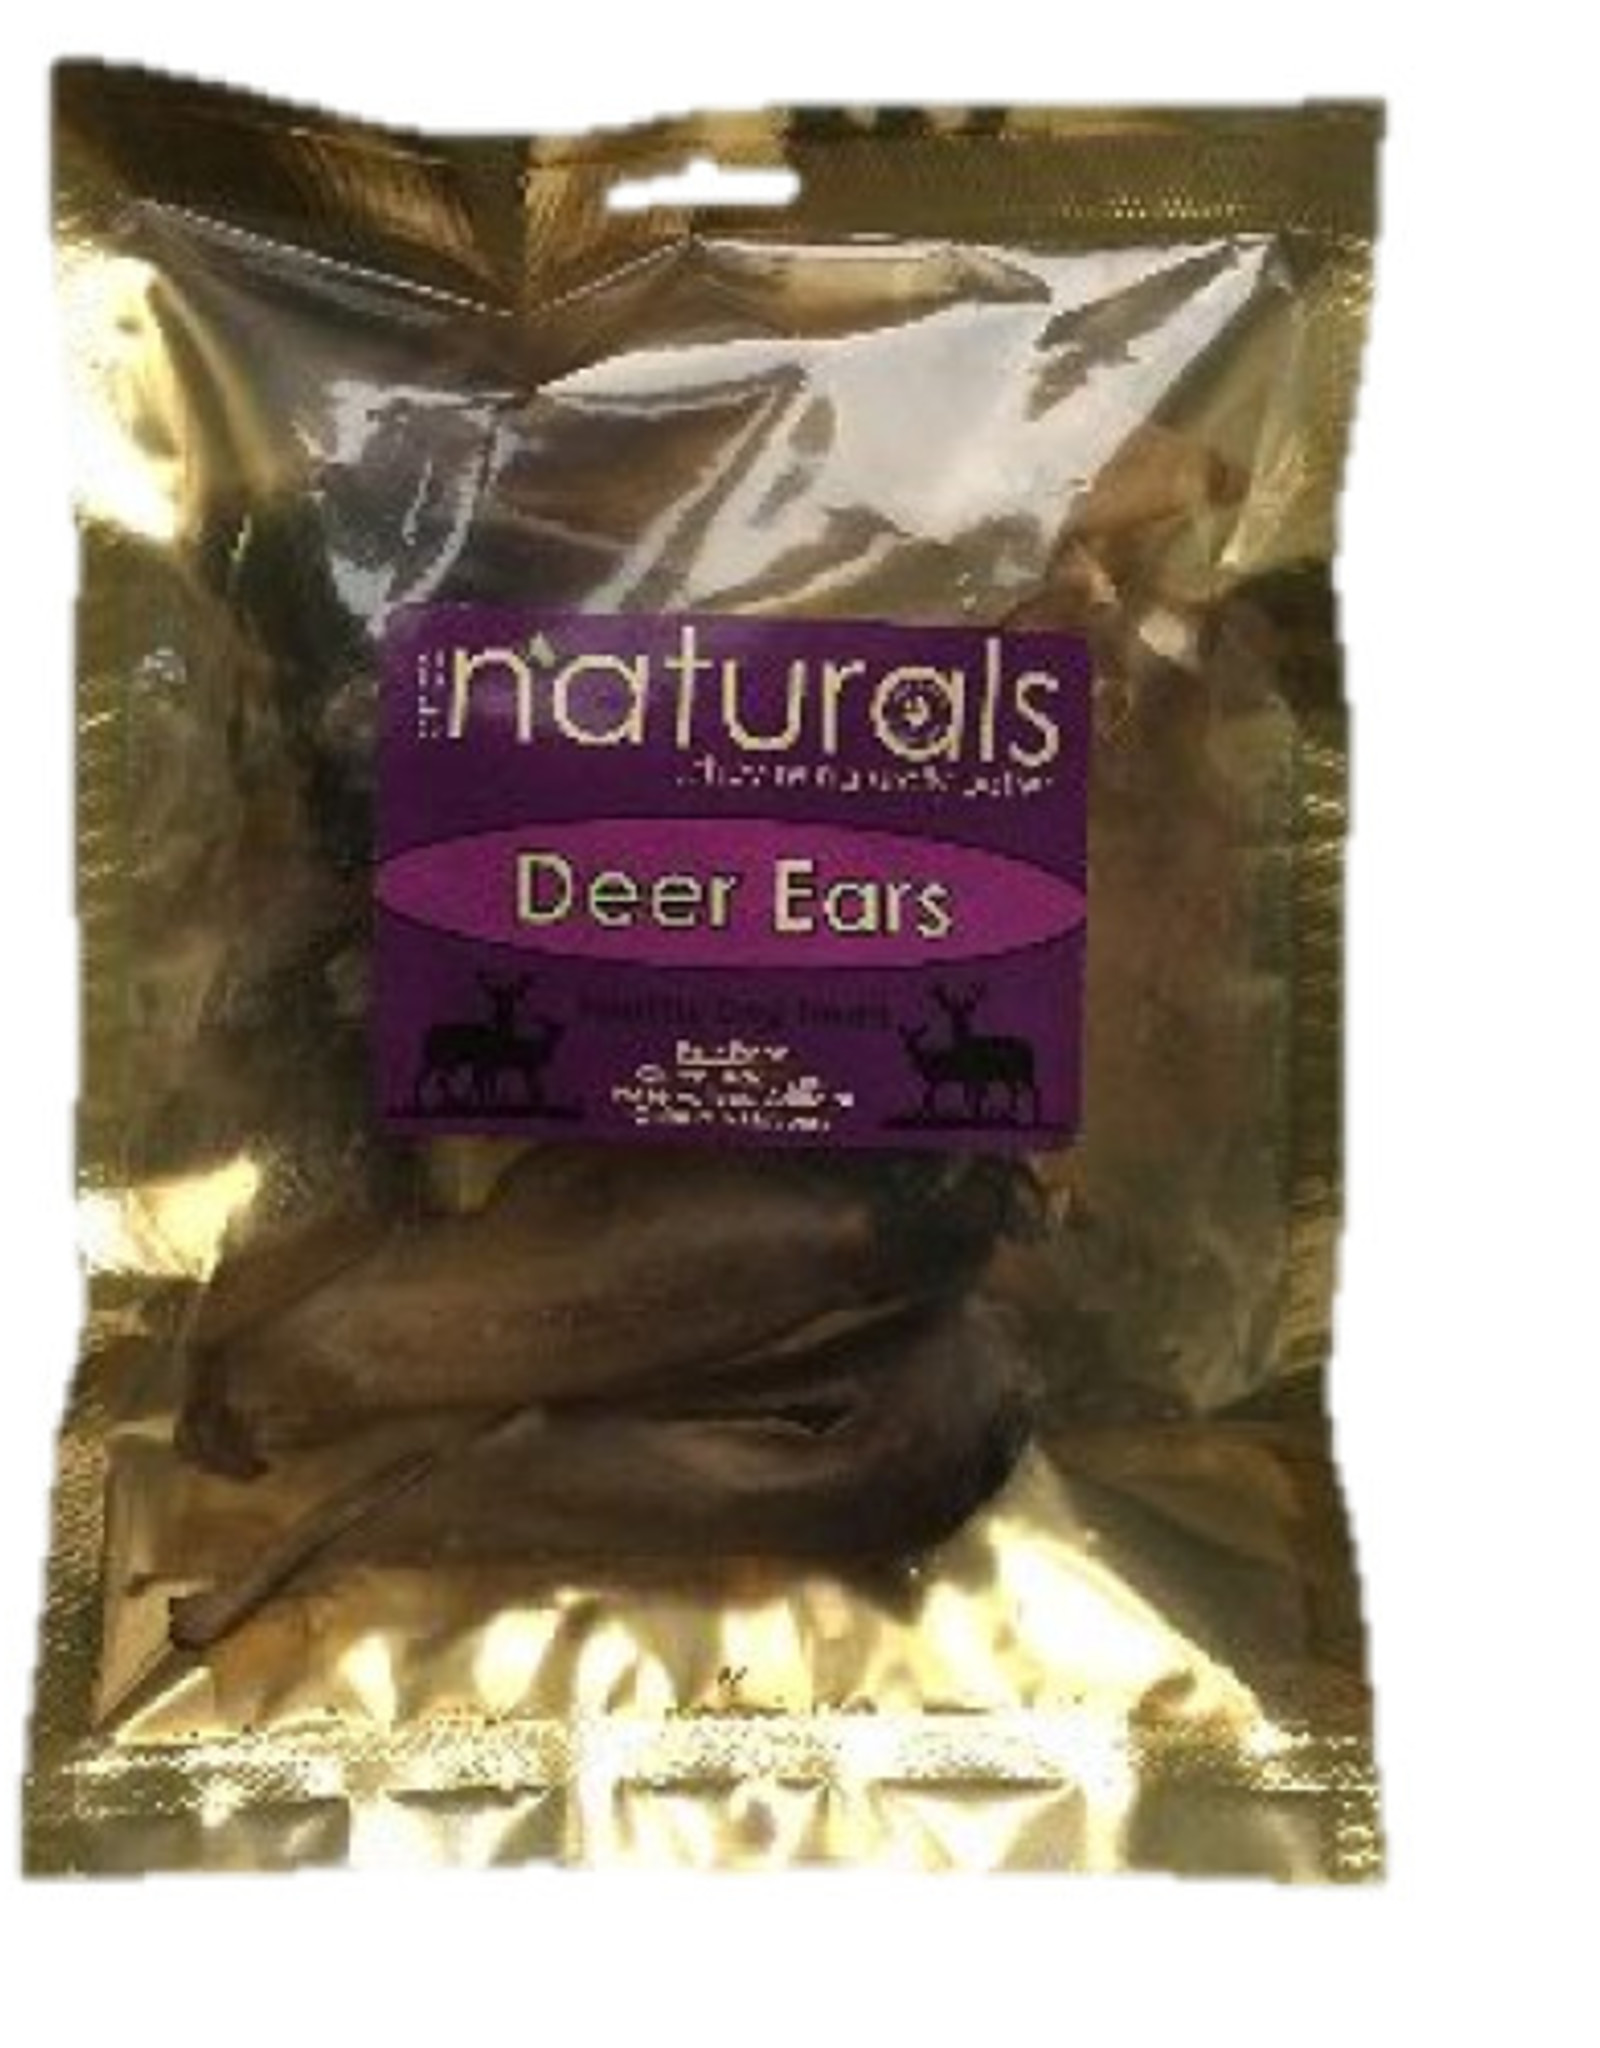 Anco Naturals Deer Ears Dog Treats, 5 pack